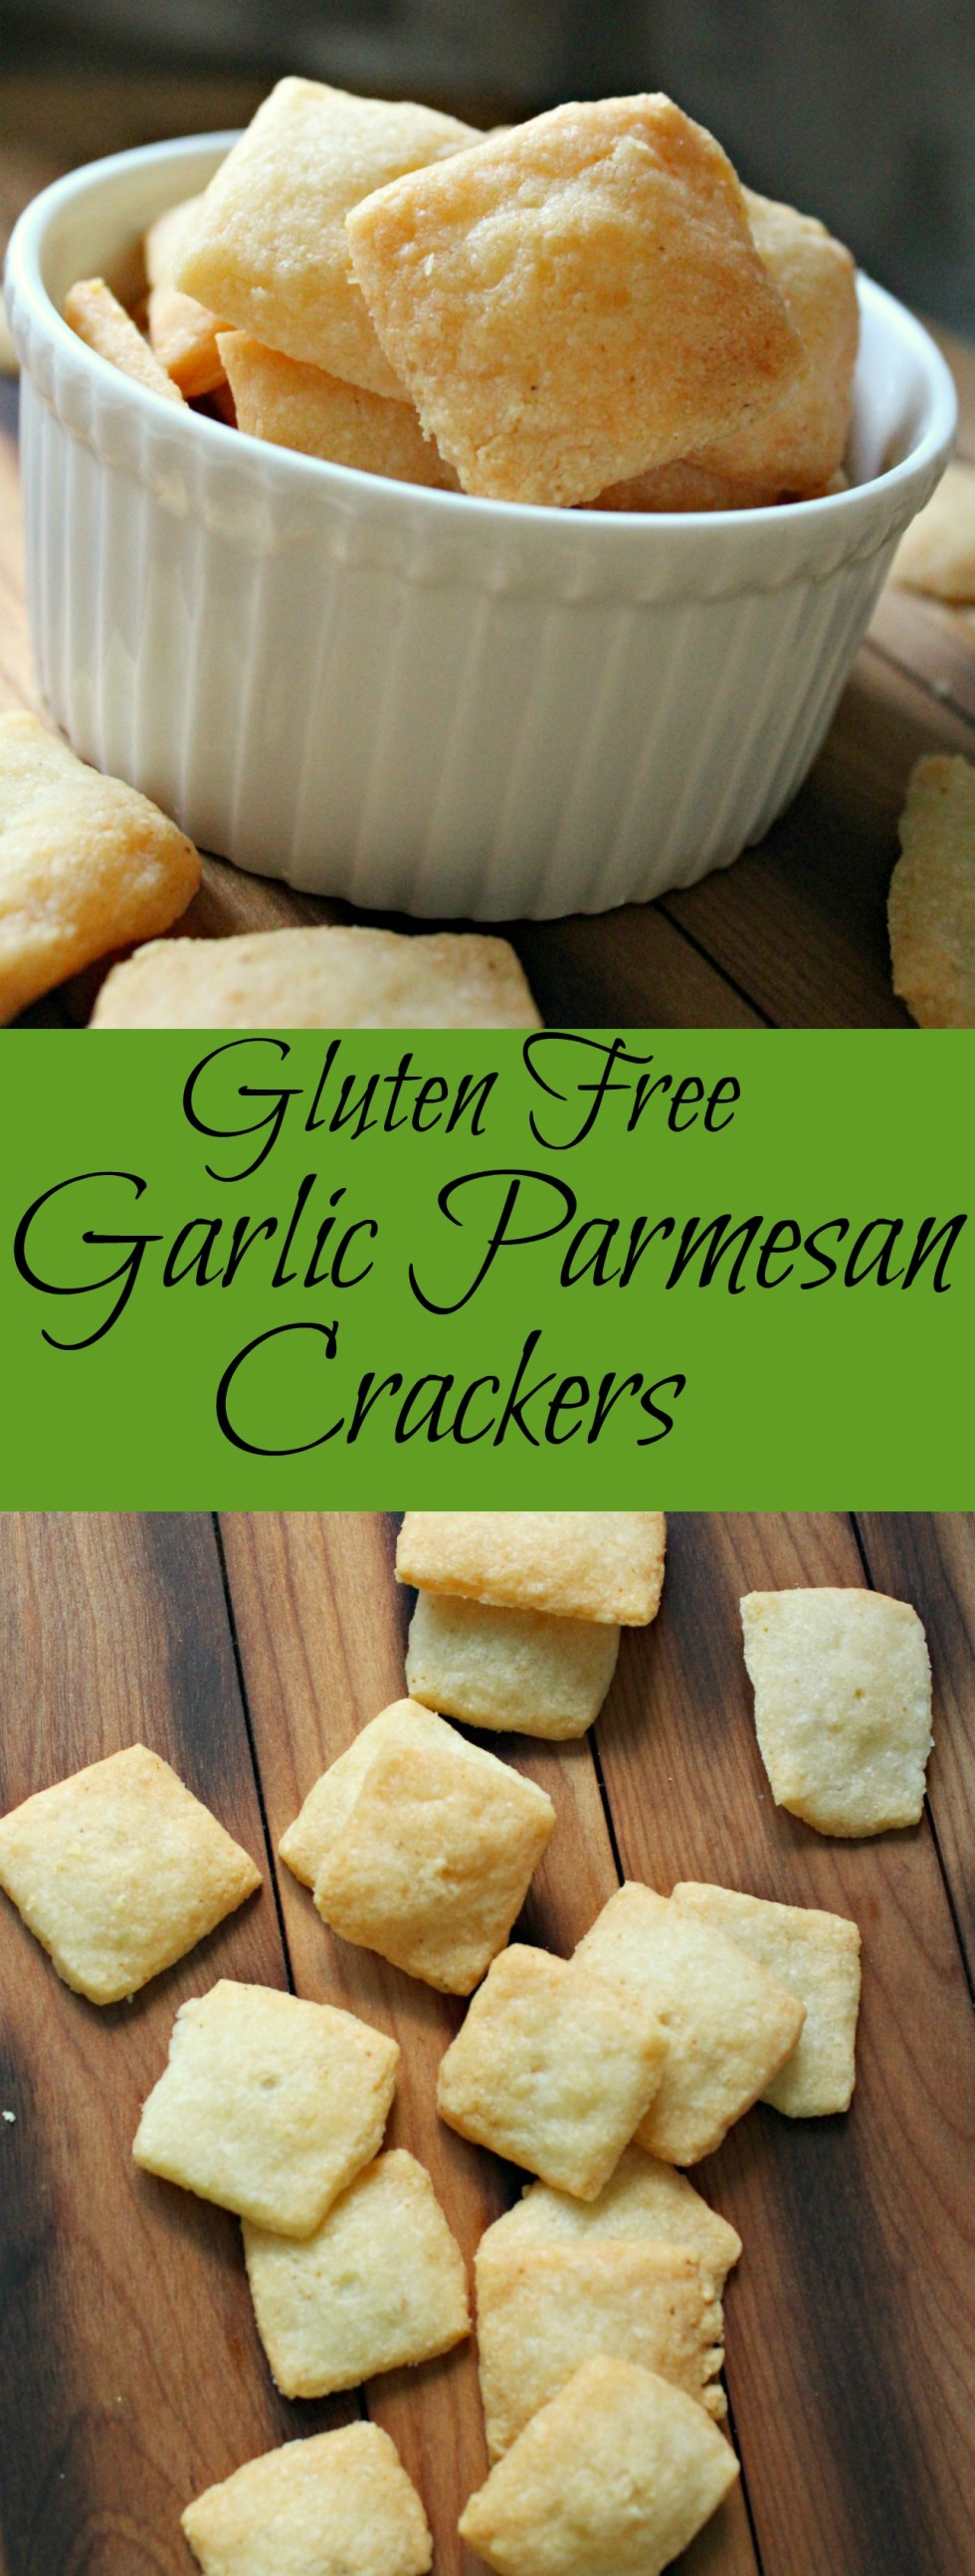 Garlic Parmesan Crackers Pin